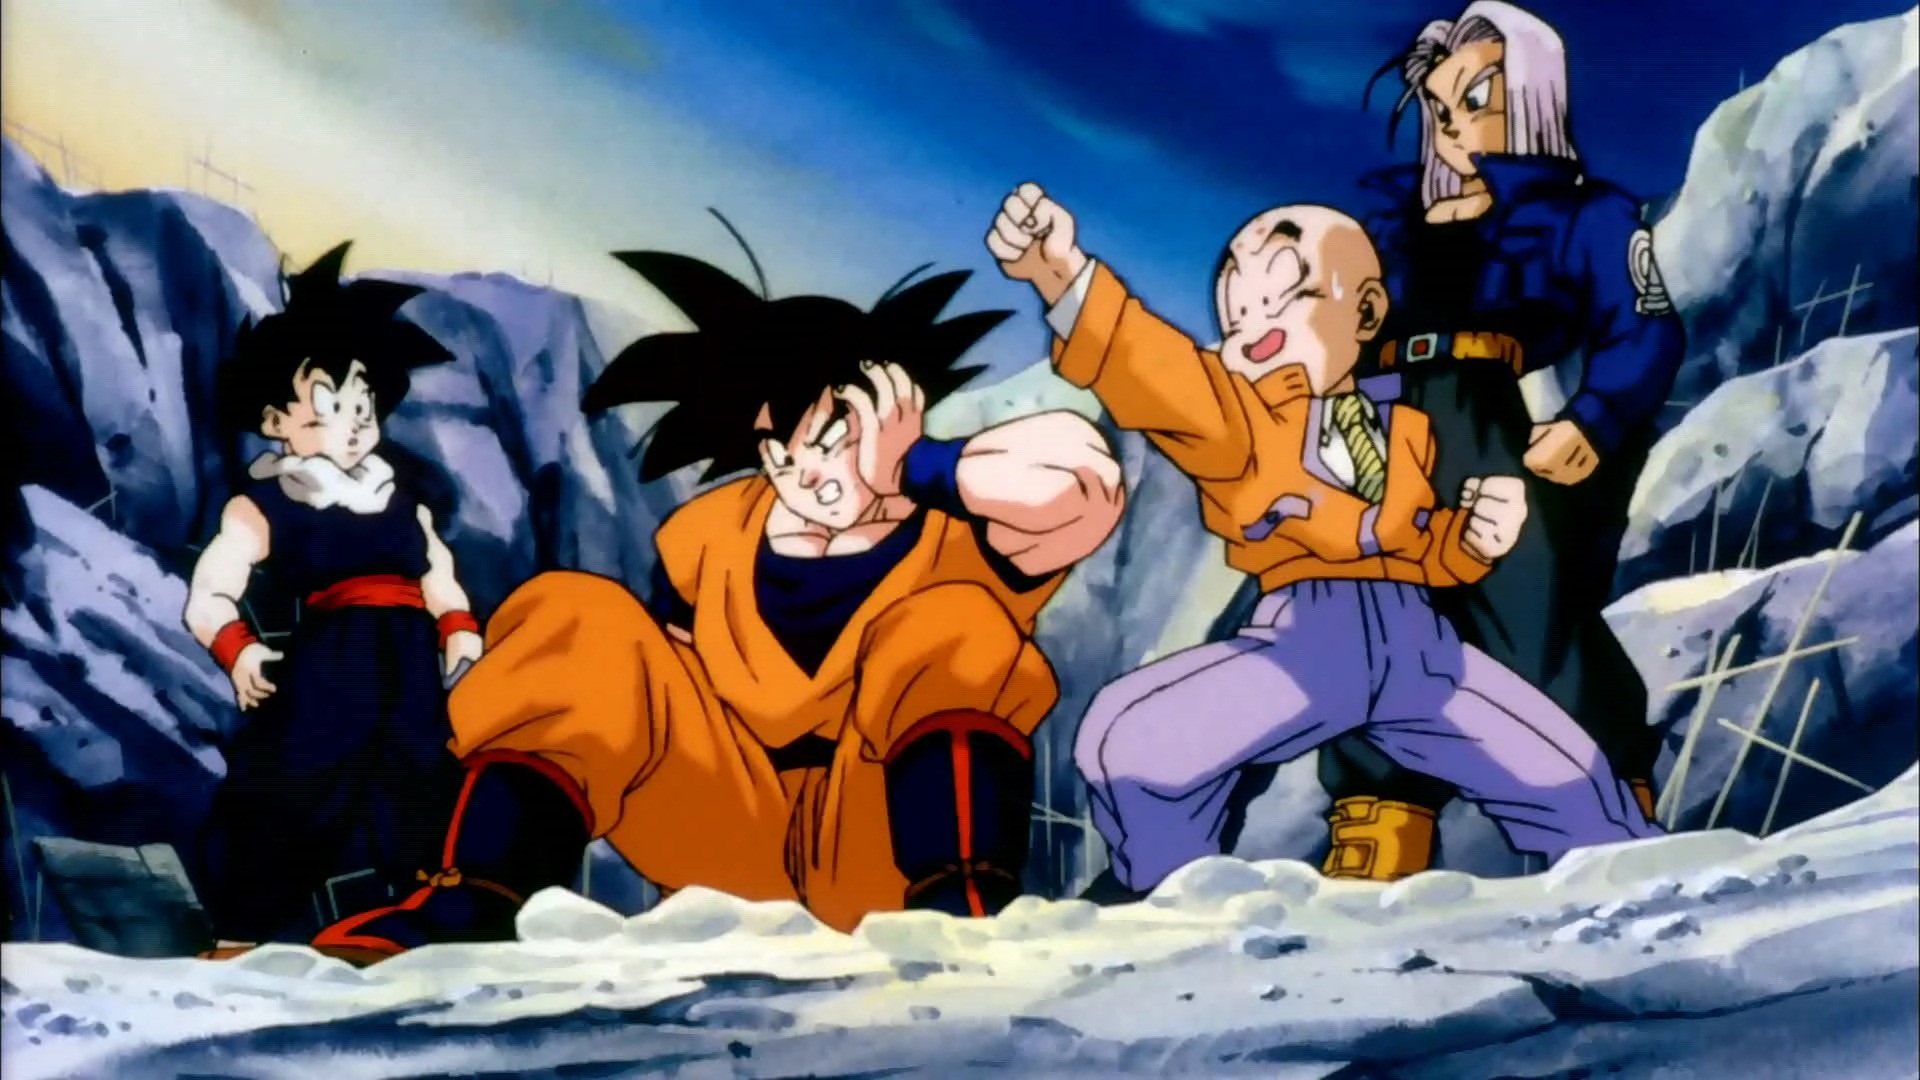 Dragon Ball Gt Krillin The And Everything Place Of Dragon Ball Z